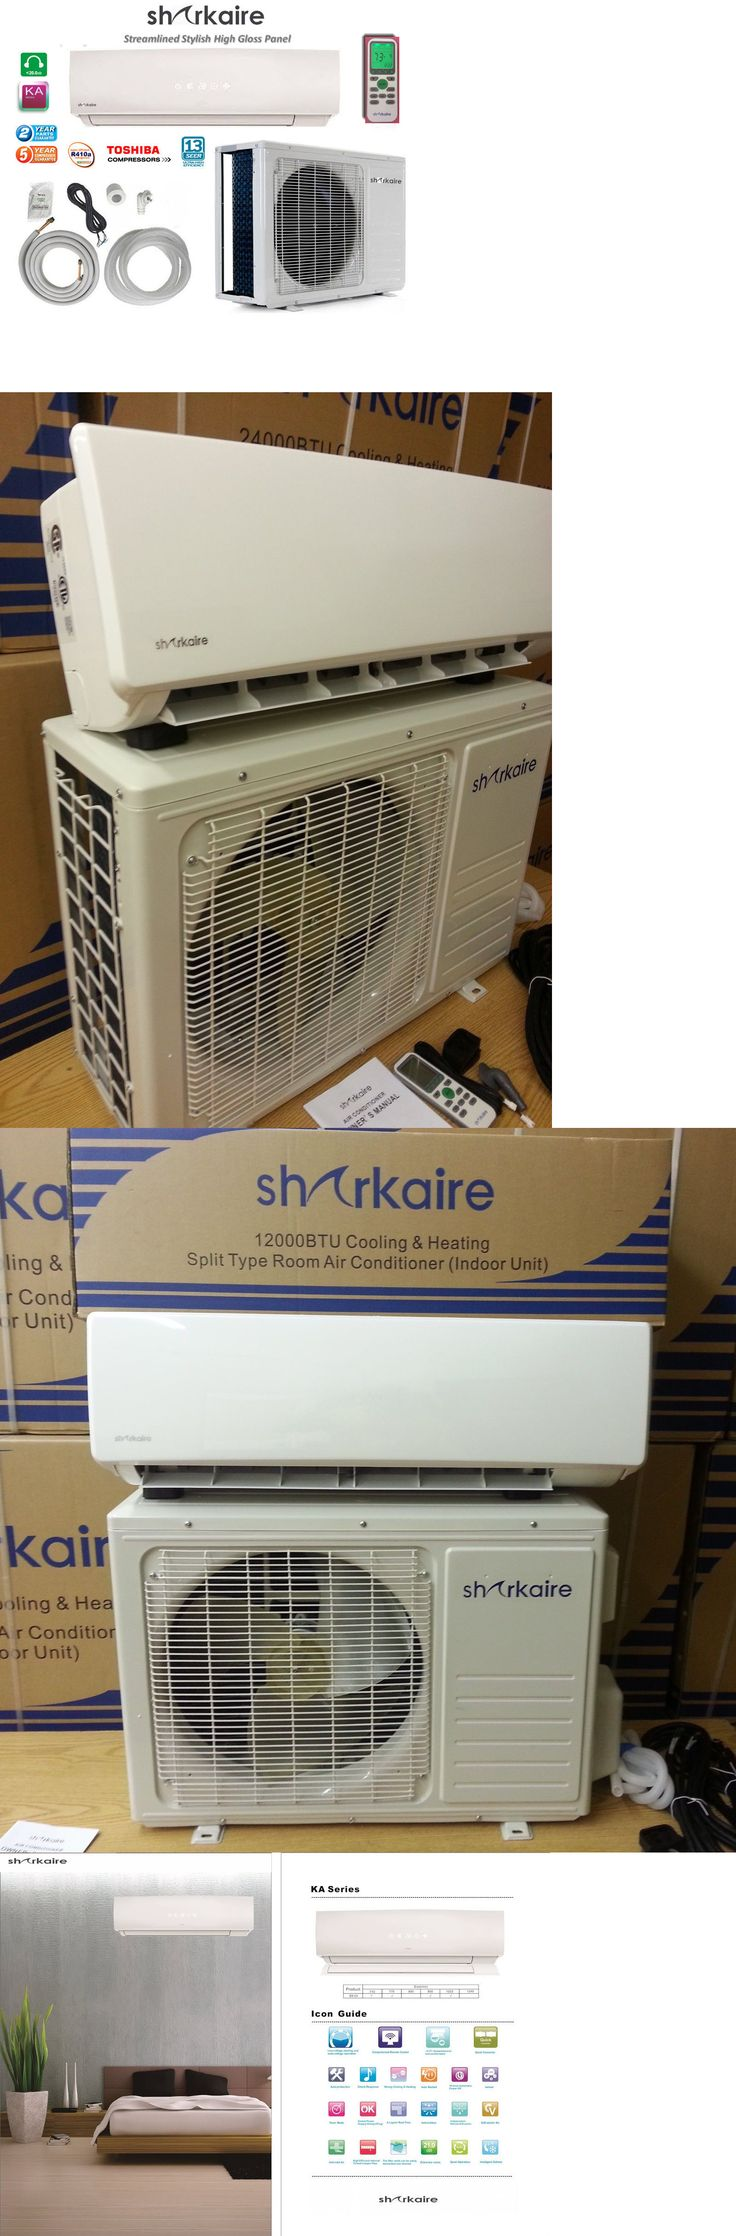 Air Conditioners 69202: Sharkaire 110 Volt 1 Ton Heat Pump Mini Split Air Conditioner Slim Ductless -> BUY IT NOW ONLY: $609.4 on eBay!